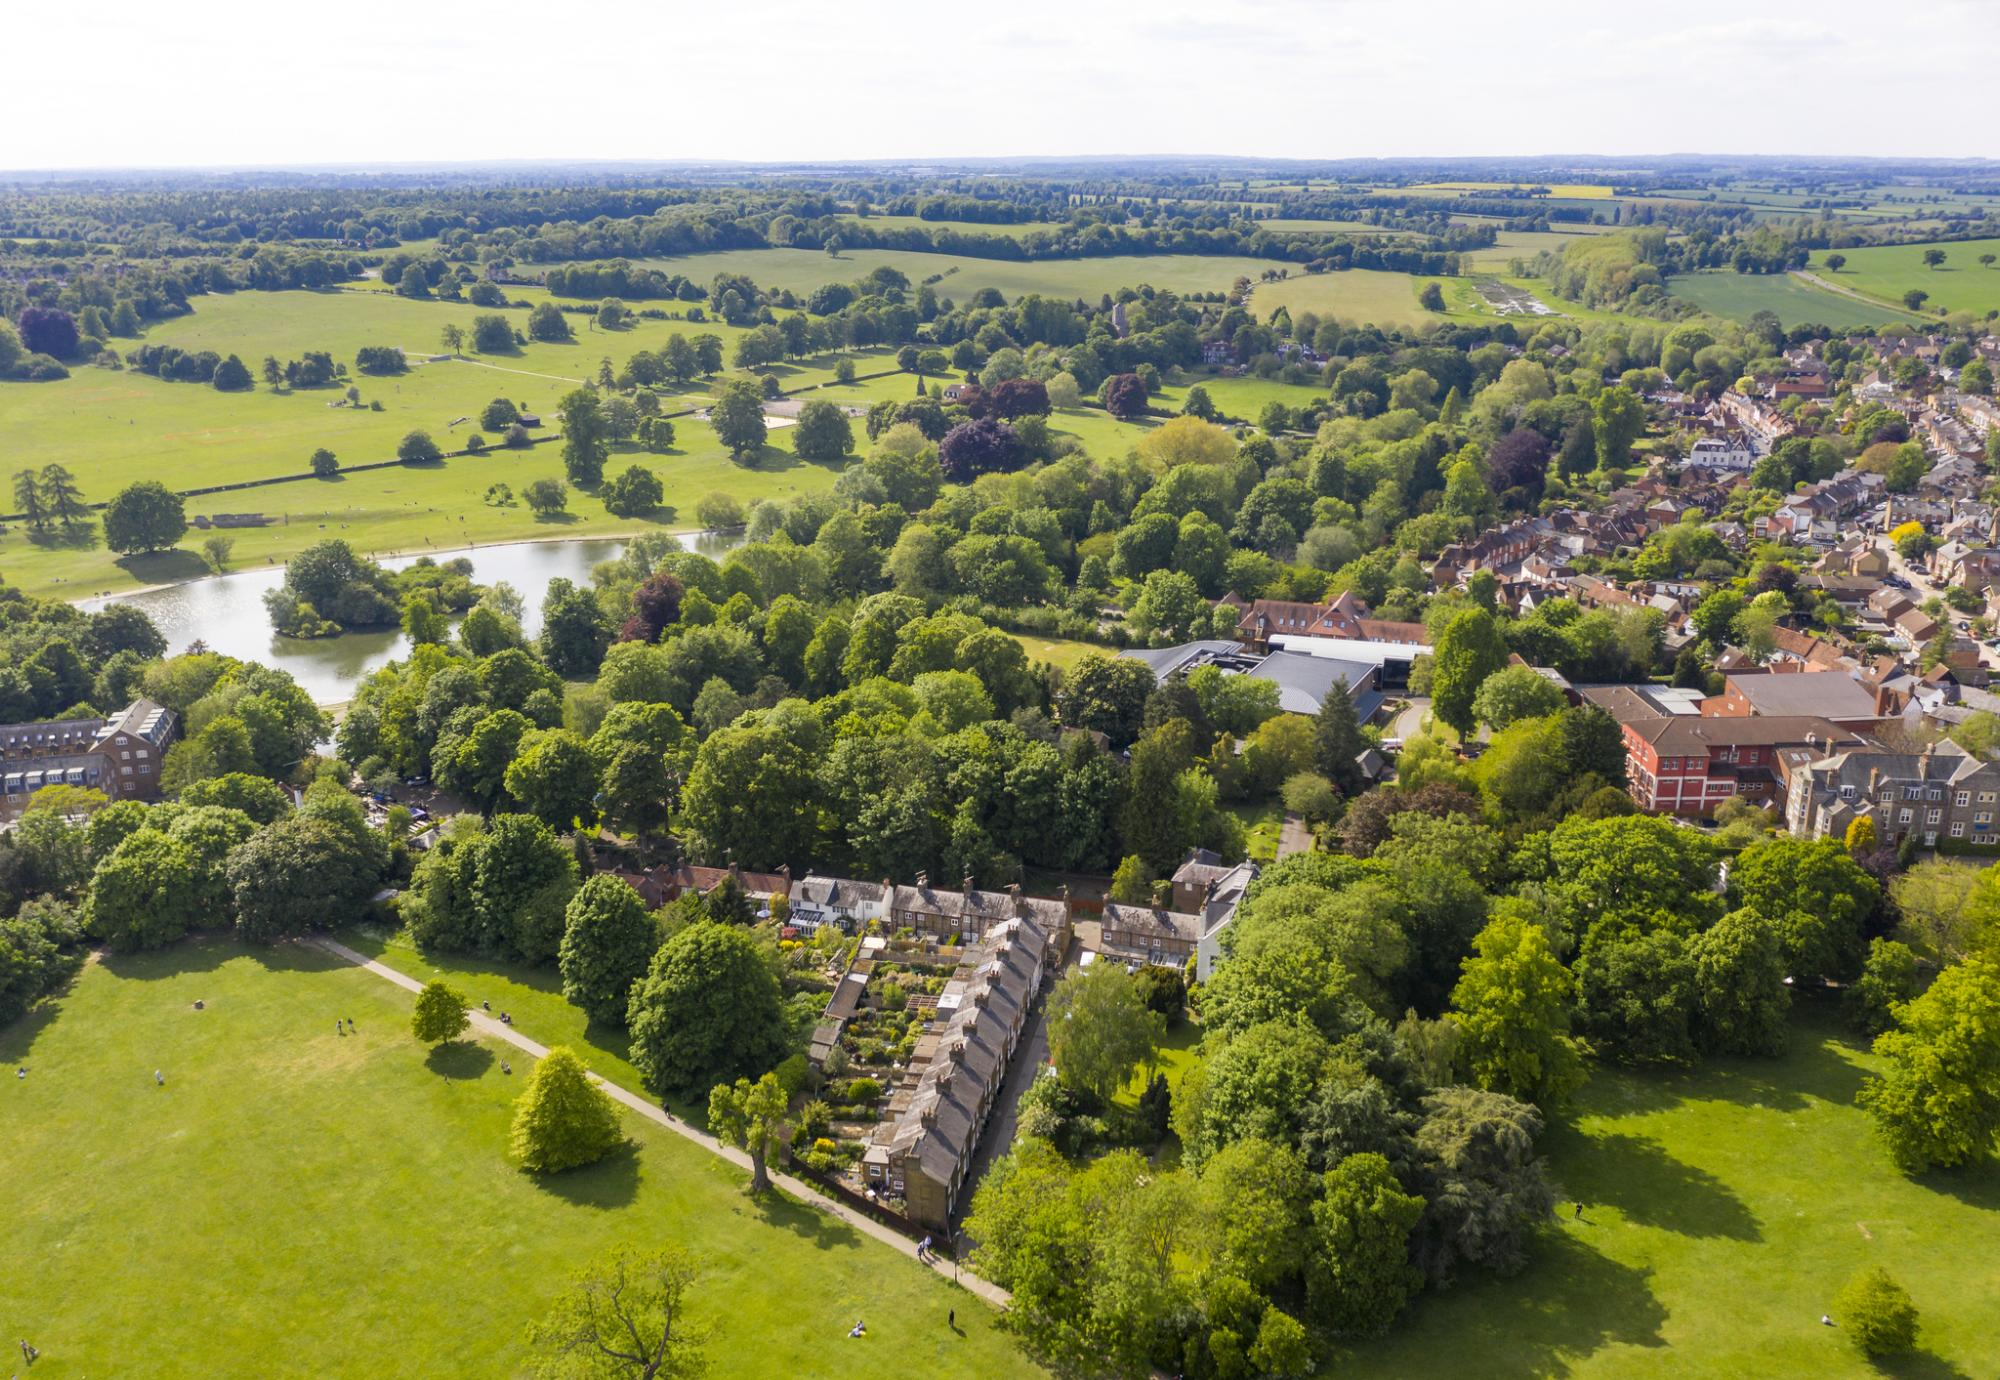 Aerial view of St Albans in Hertfordshire